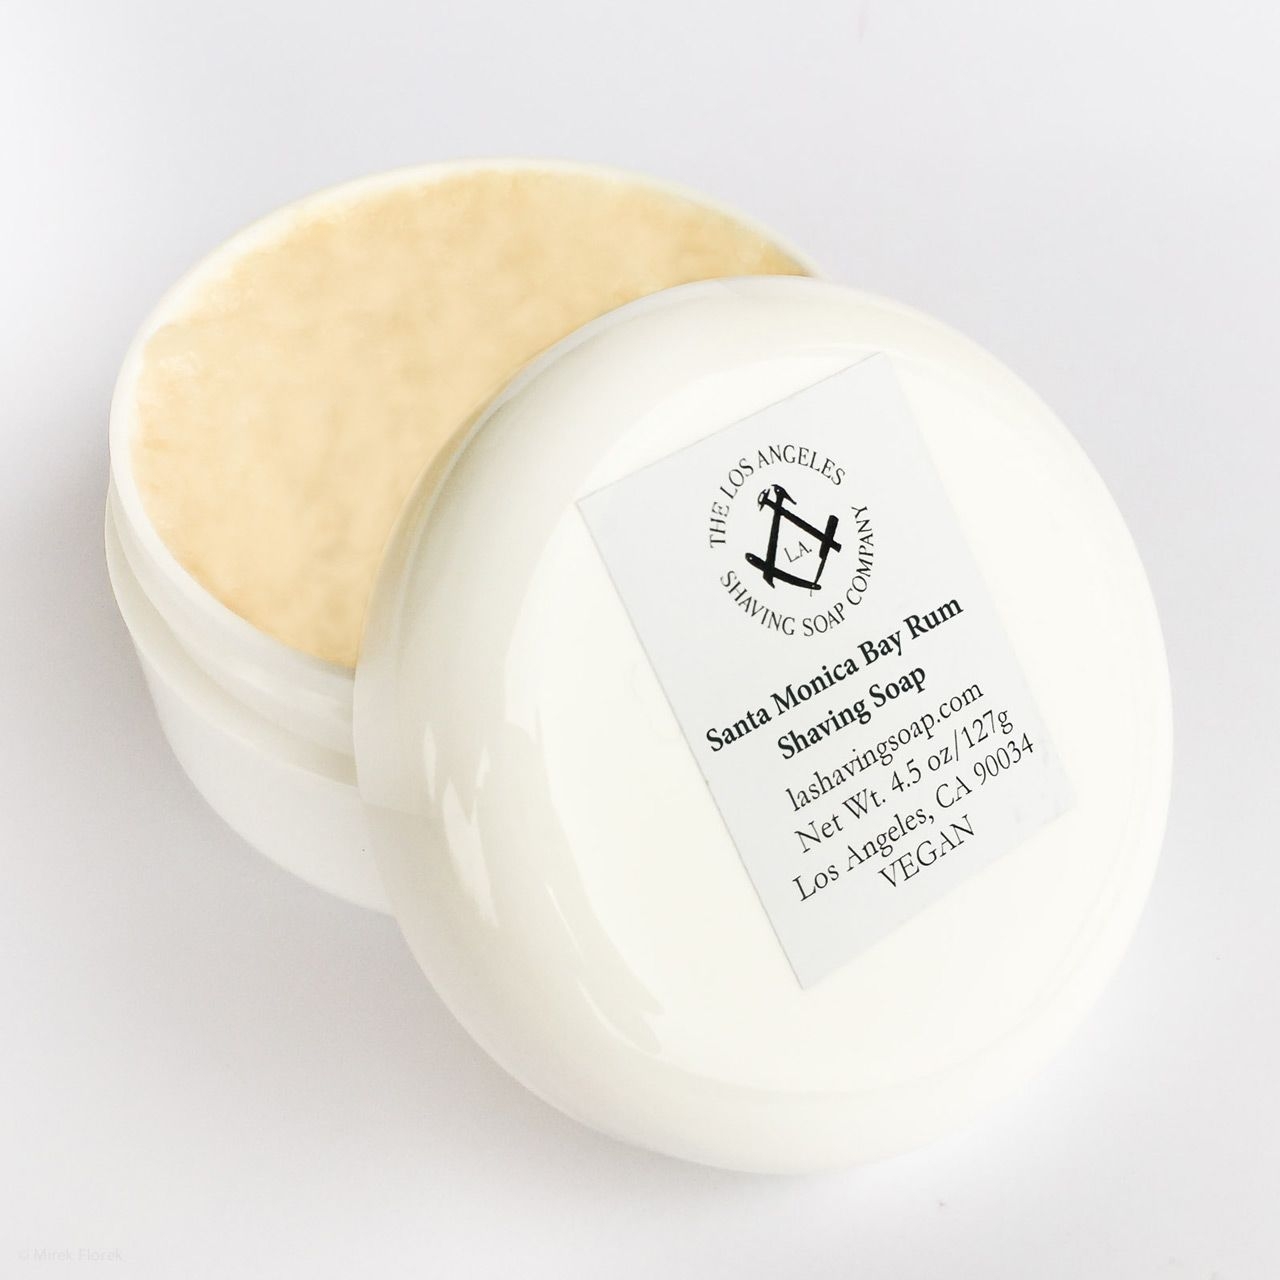 You are currently viewing Los Angeles Santa Monica Bay Rum Shaving Soap – recenzja mydła do golenia